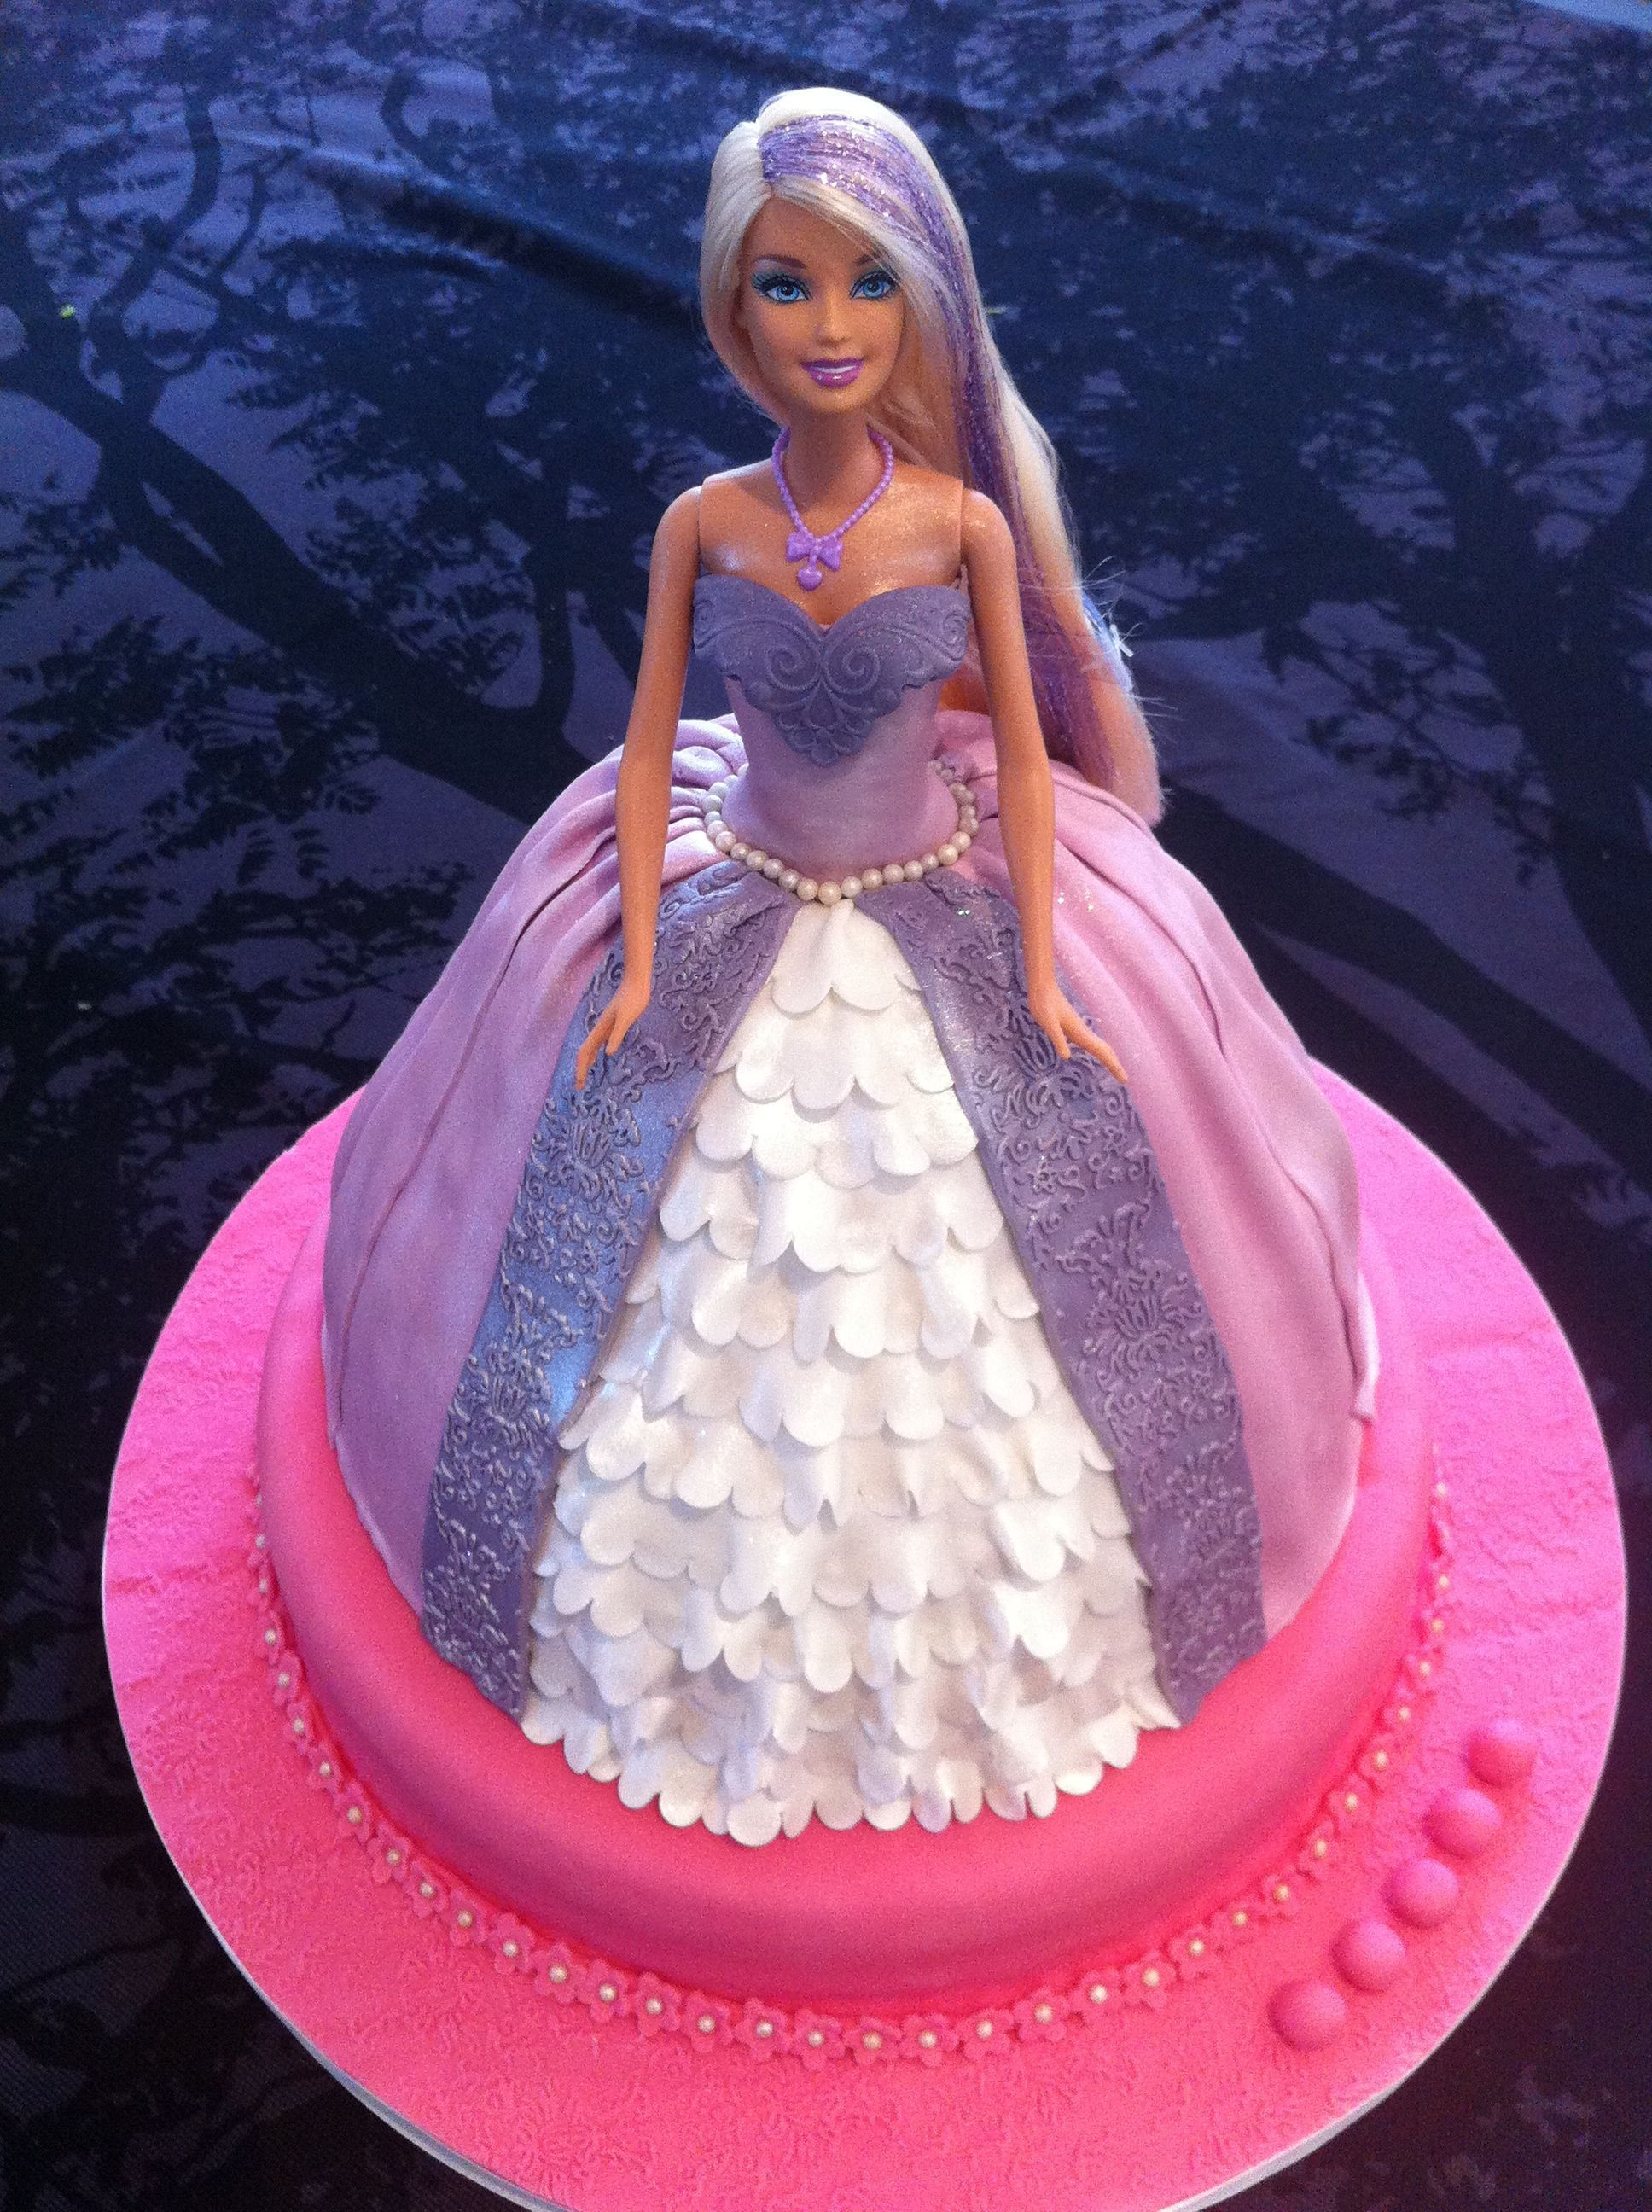 Barbie Cake 3 Another Barbie Princess Cake For A Cute 5 Year Old